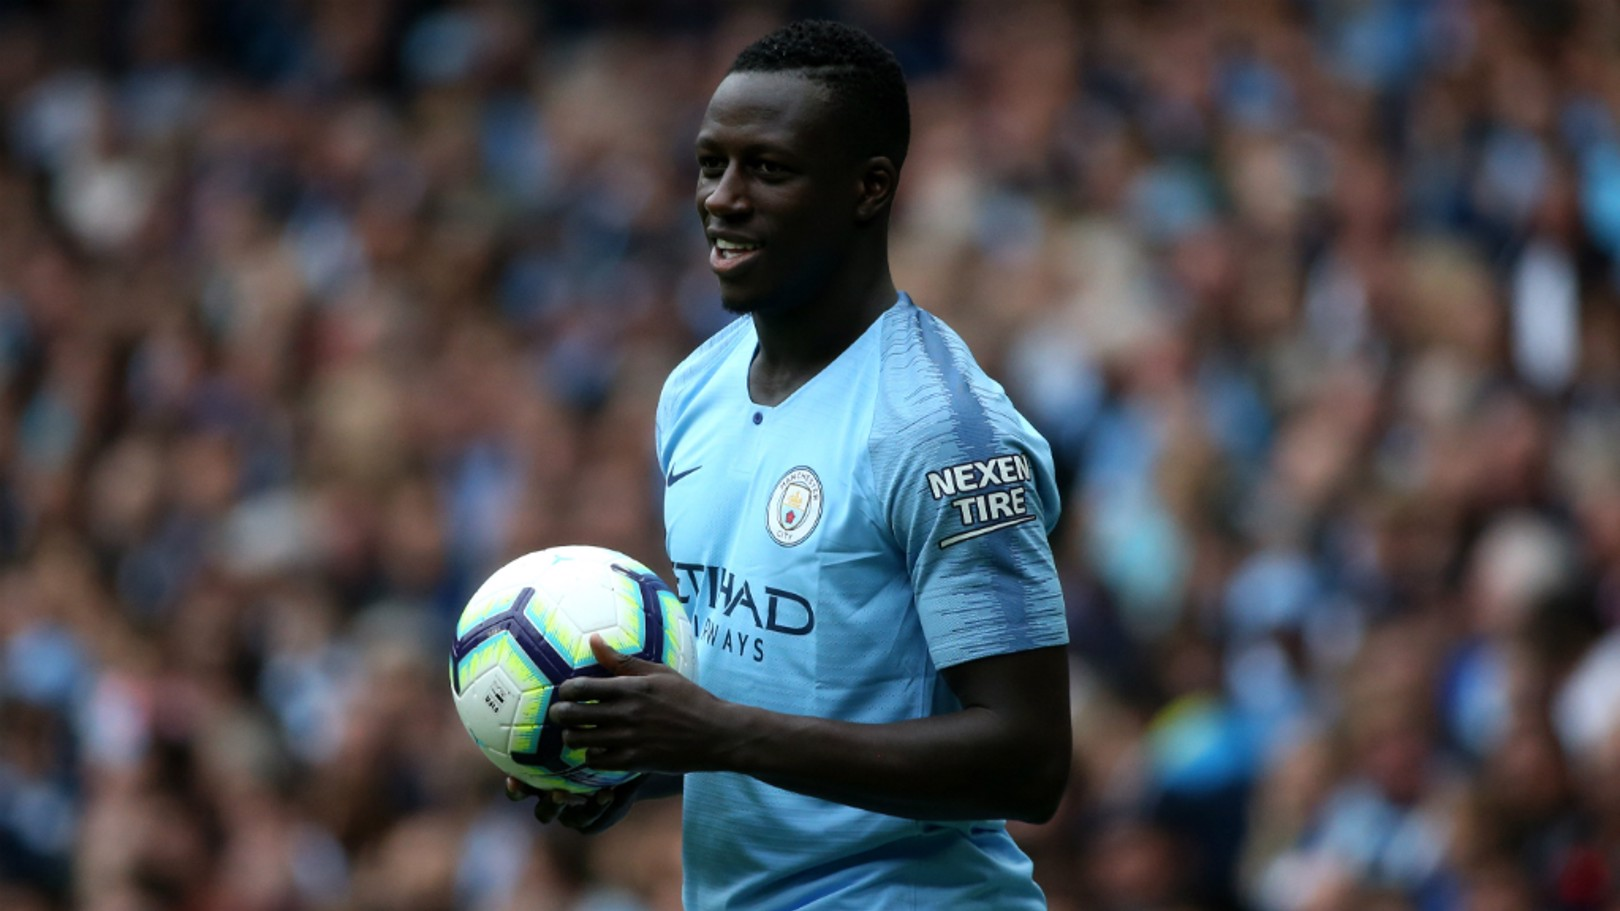 JOYEUX: Benjamin Mendy was glad to be back in action at the Etihad Stadium